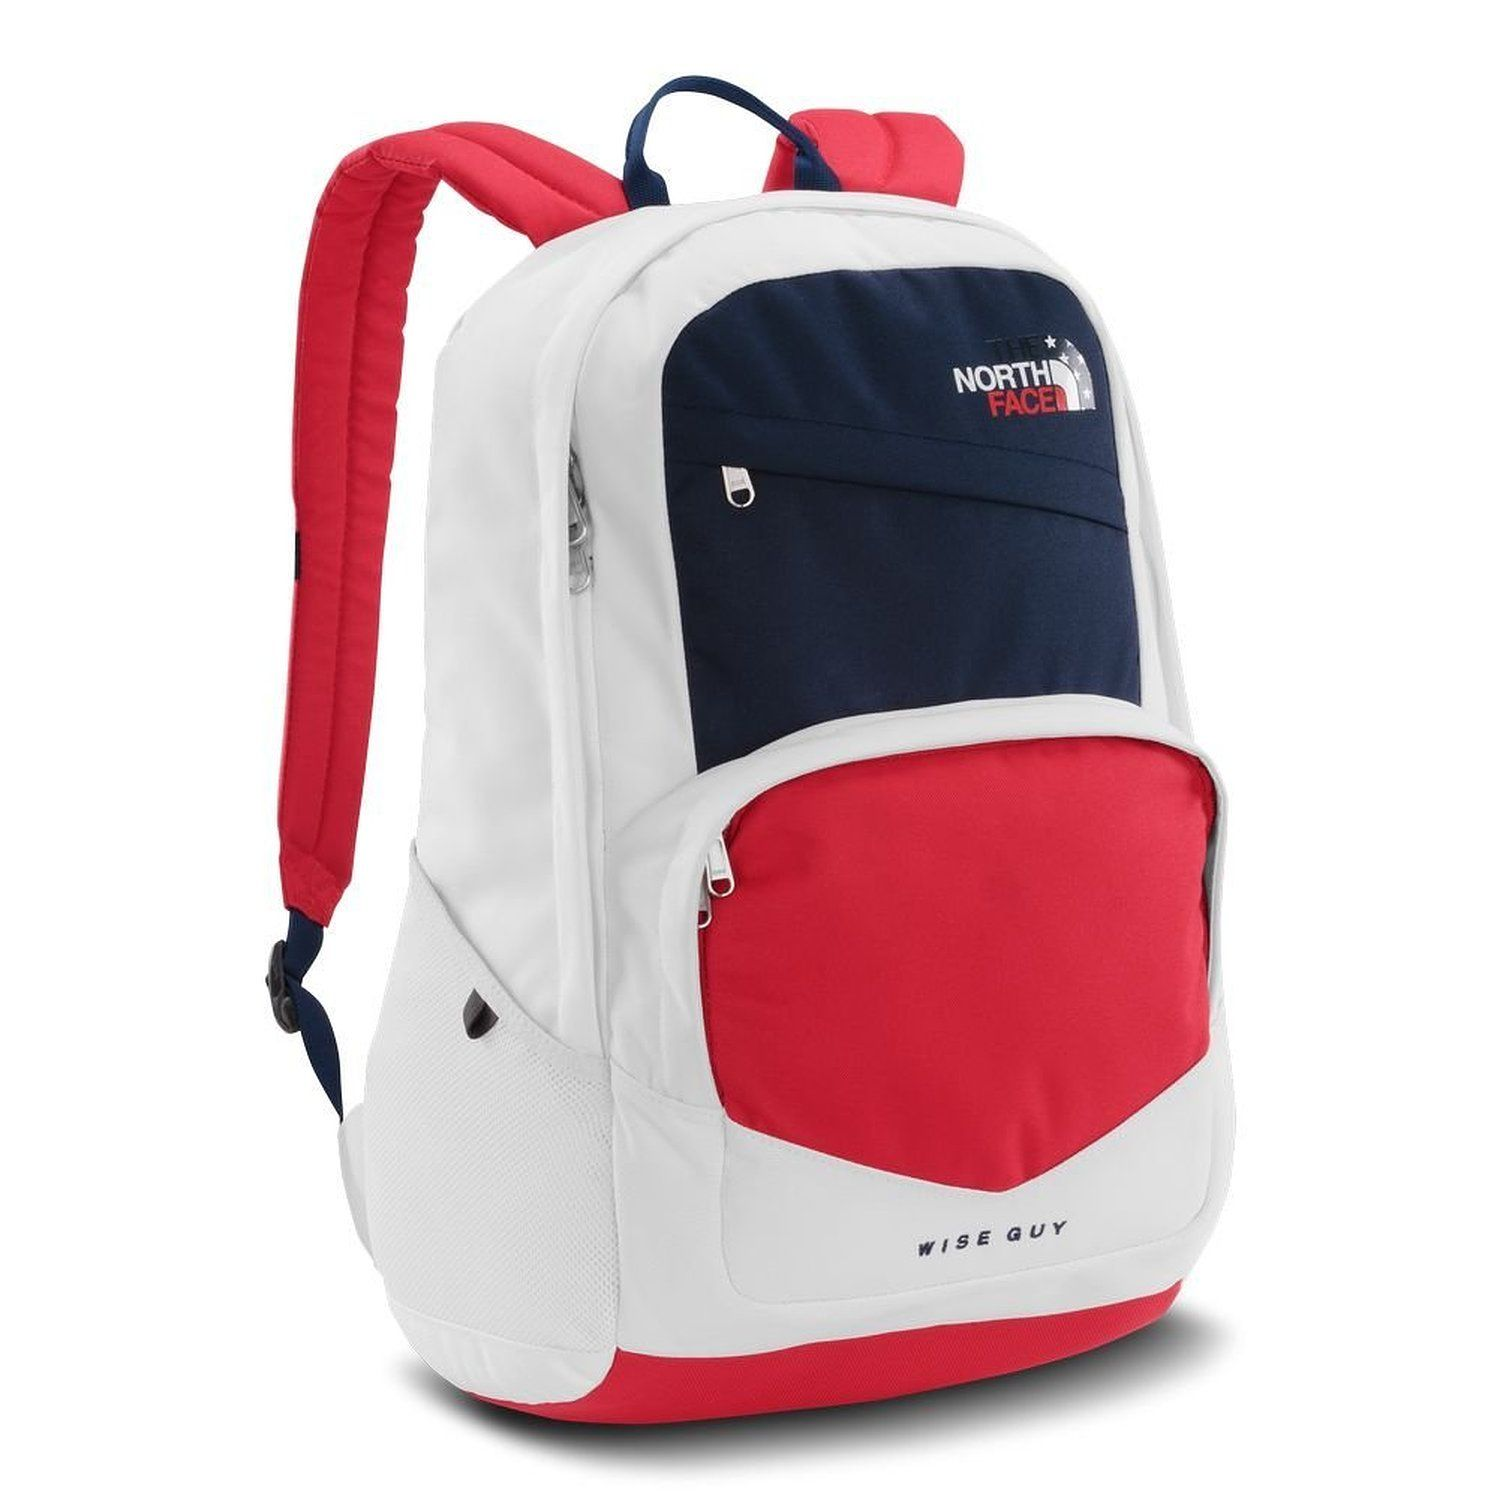 40fd01091 Amazon.com: The North Face USA Wise Guy Backpack TNF White/Cosmic ...